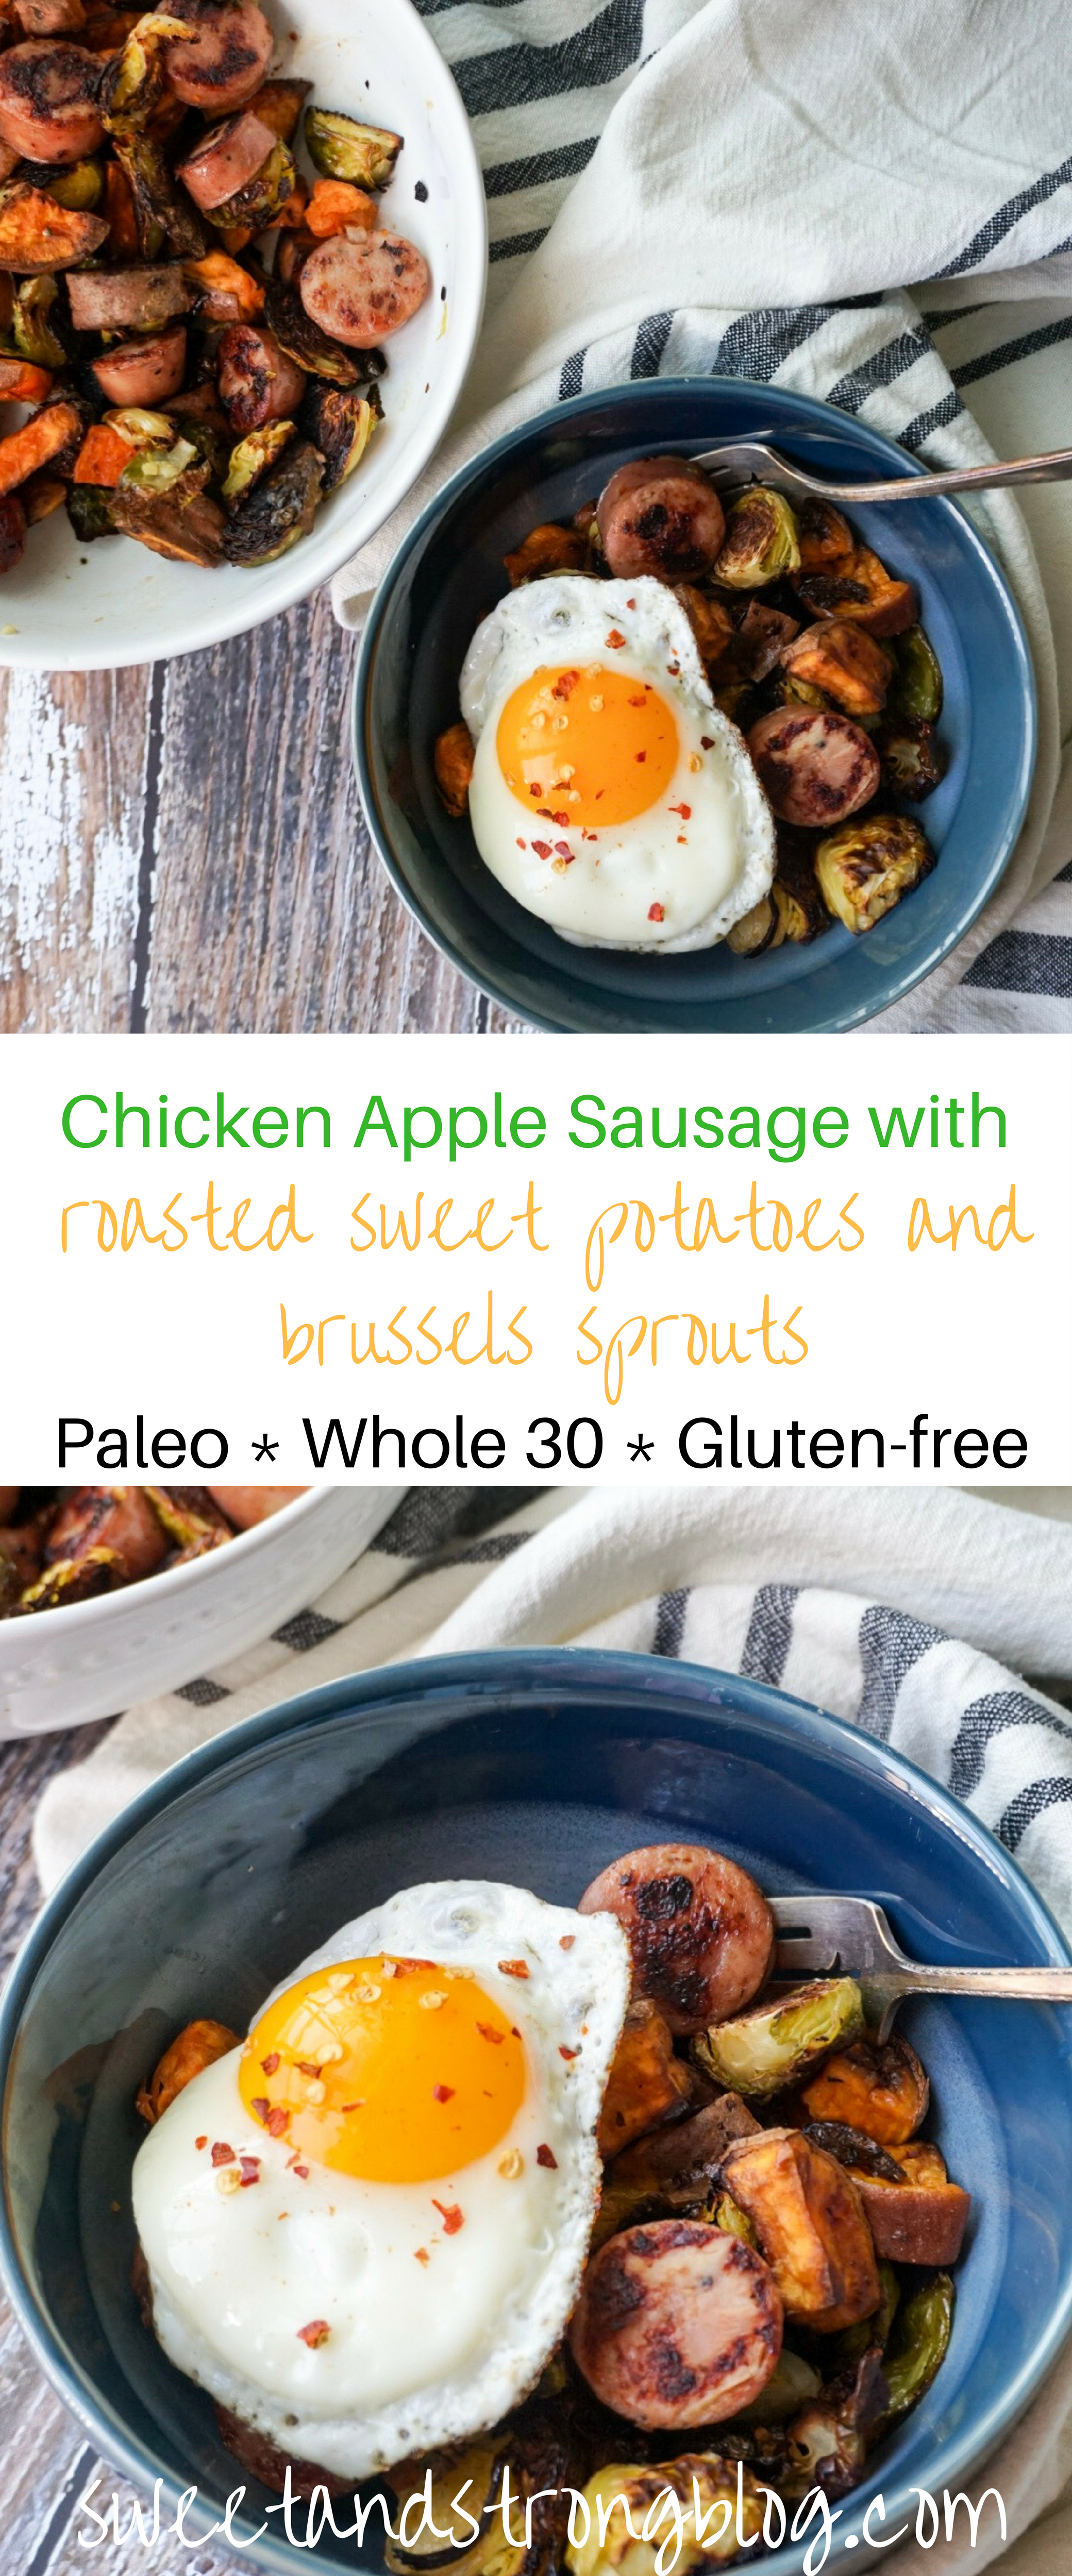 Chicken Apple Sausage with Roasted Sweet Potatoes and Brussels Sprouts recipe by Sweet and Strong Blog. #paleo #whole30 #glutenfree #healthyeating #healthyliving #quickdinner